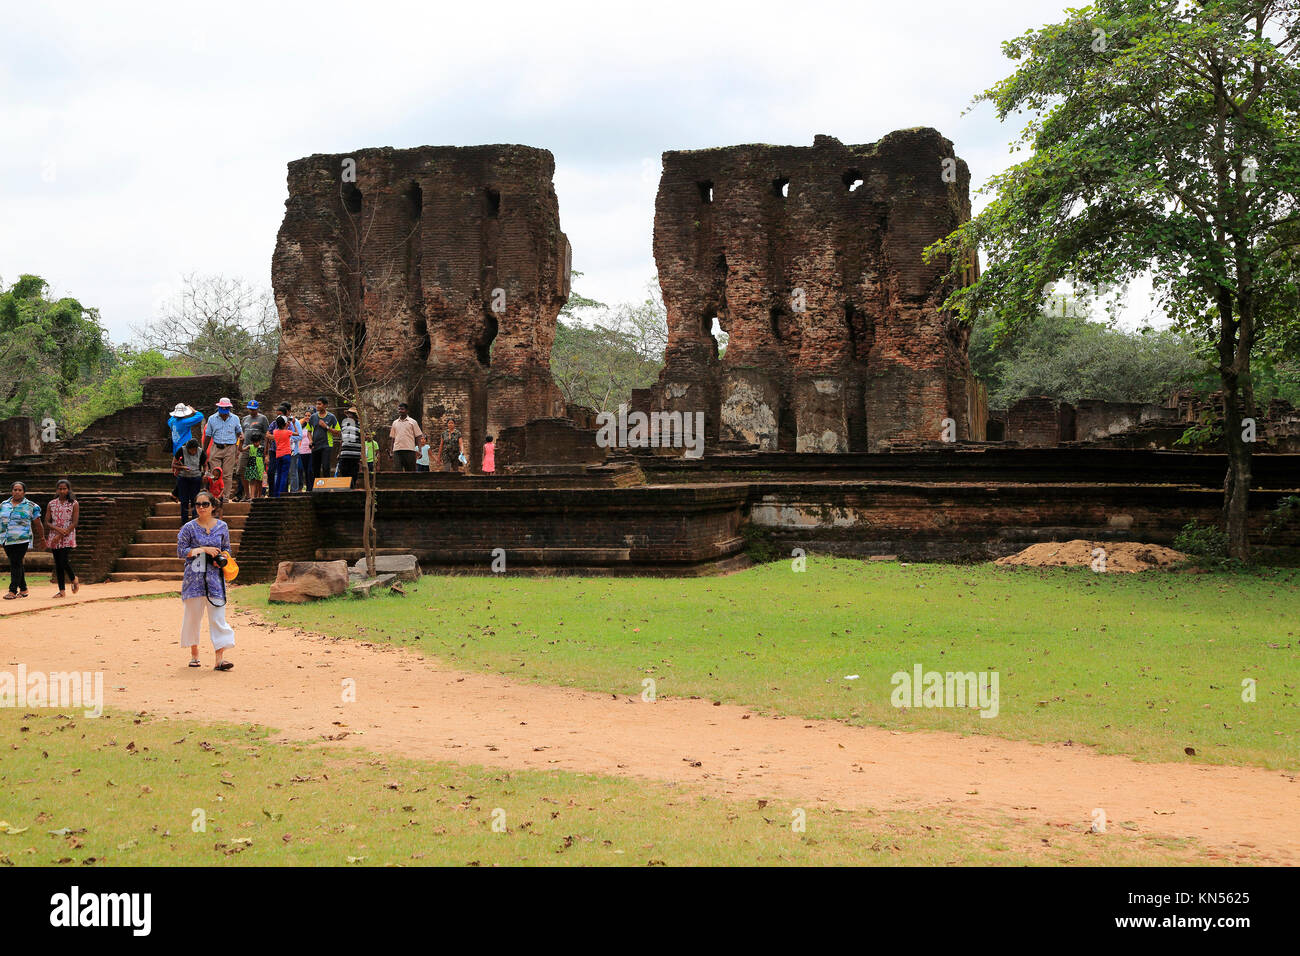 Royal palace in the Citadel, UNESCO World Heritage Site, the ancient city of Polonnaruwa, Sri Lanka, Asia - Stock Image